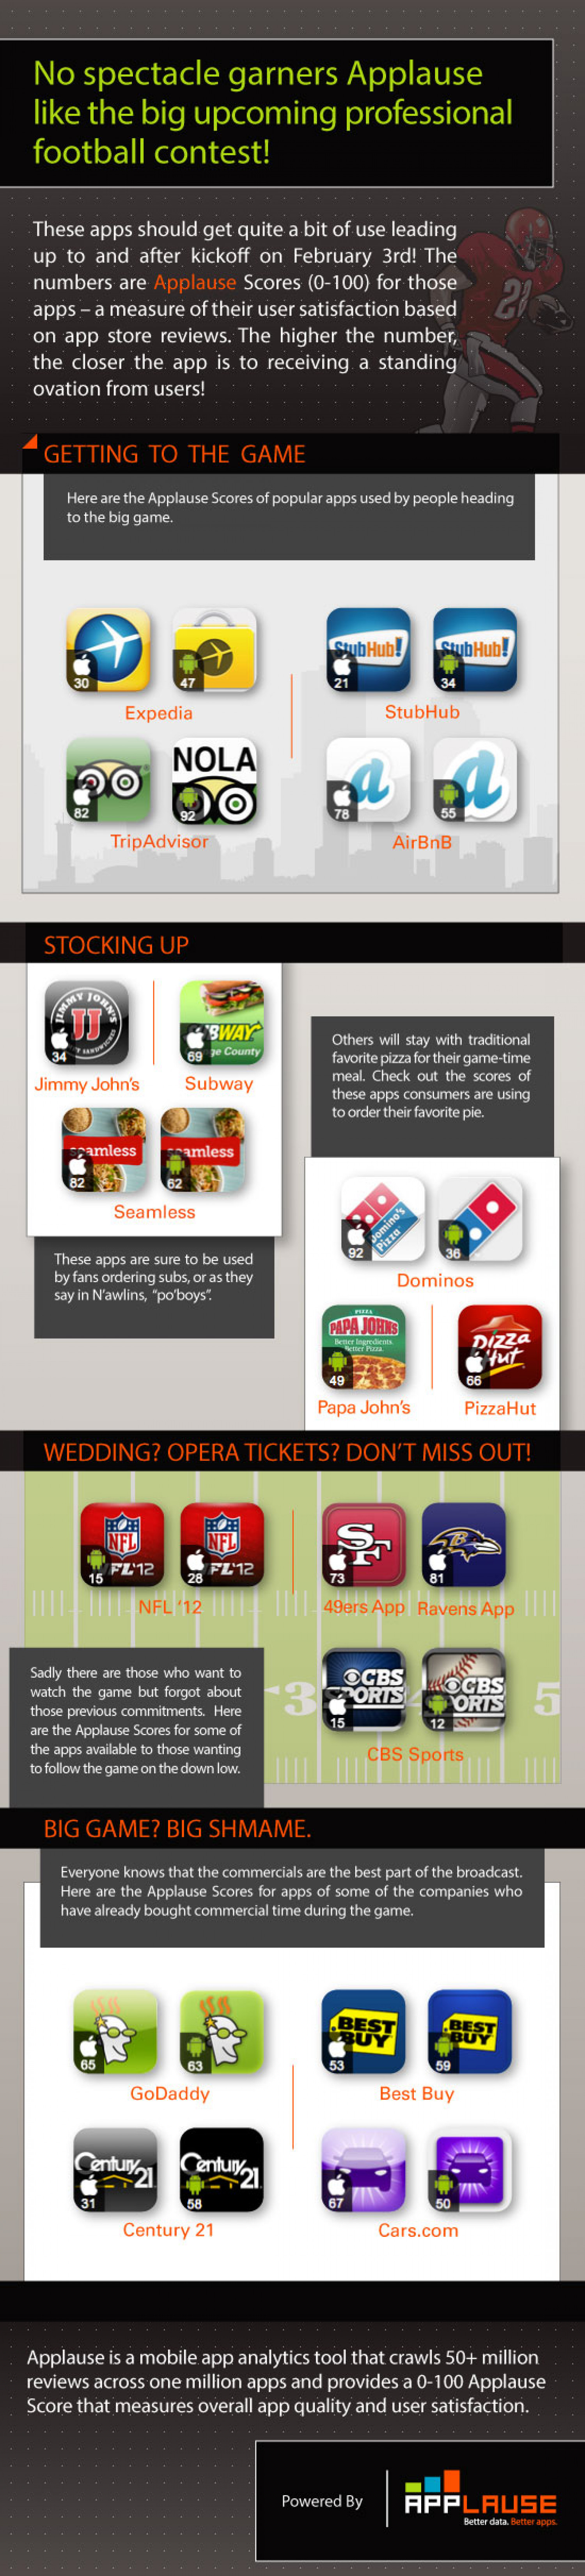 Top Apps for the Big Football Game on Sunday Infographic